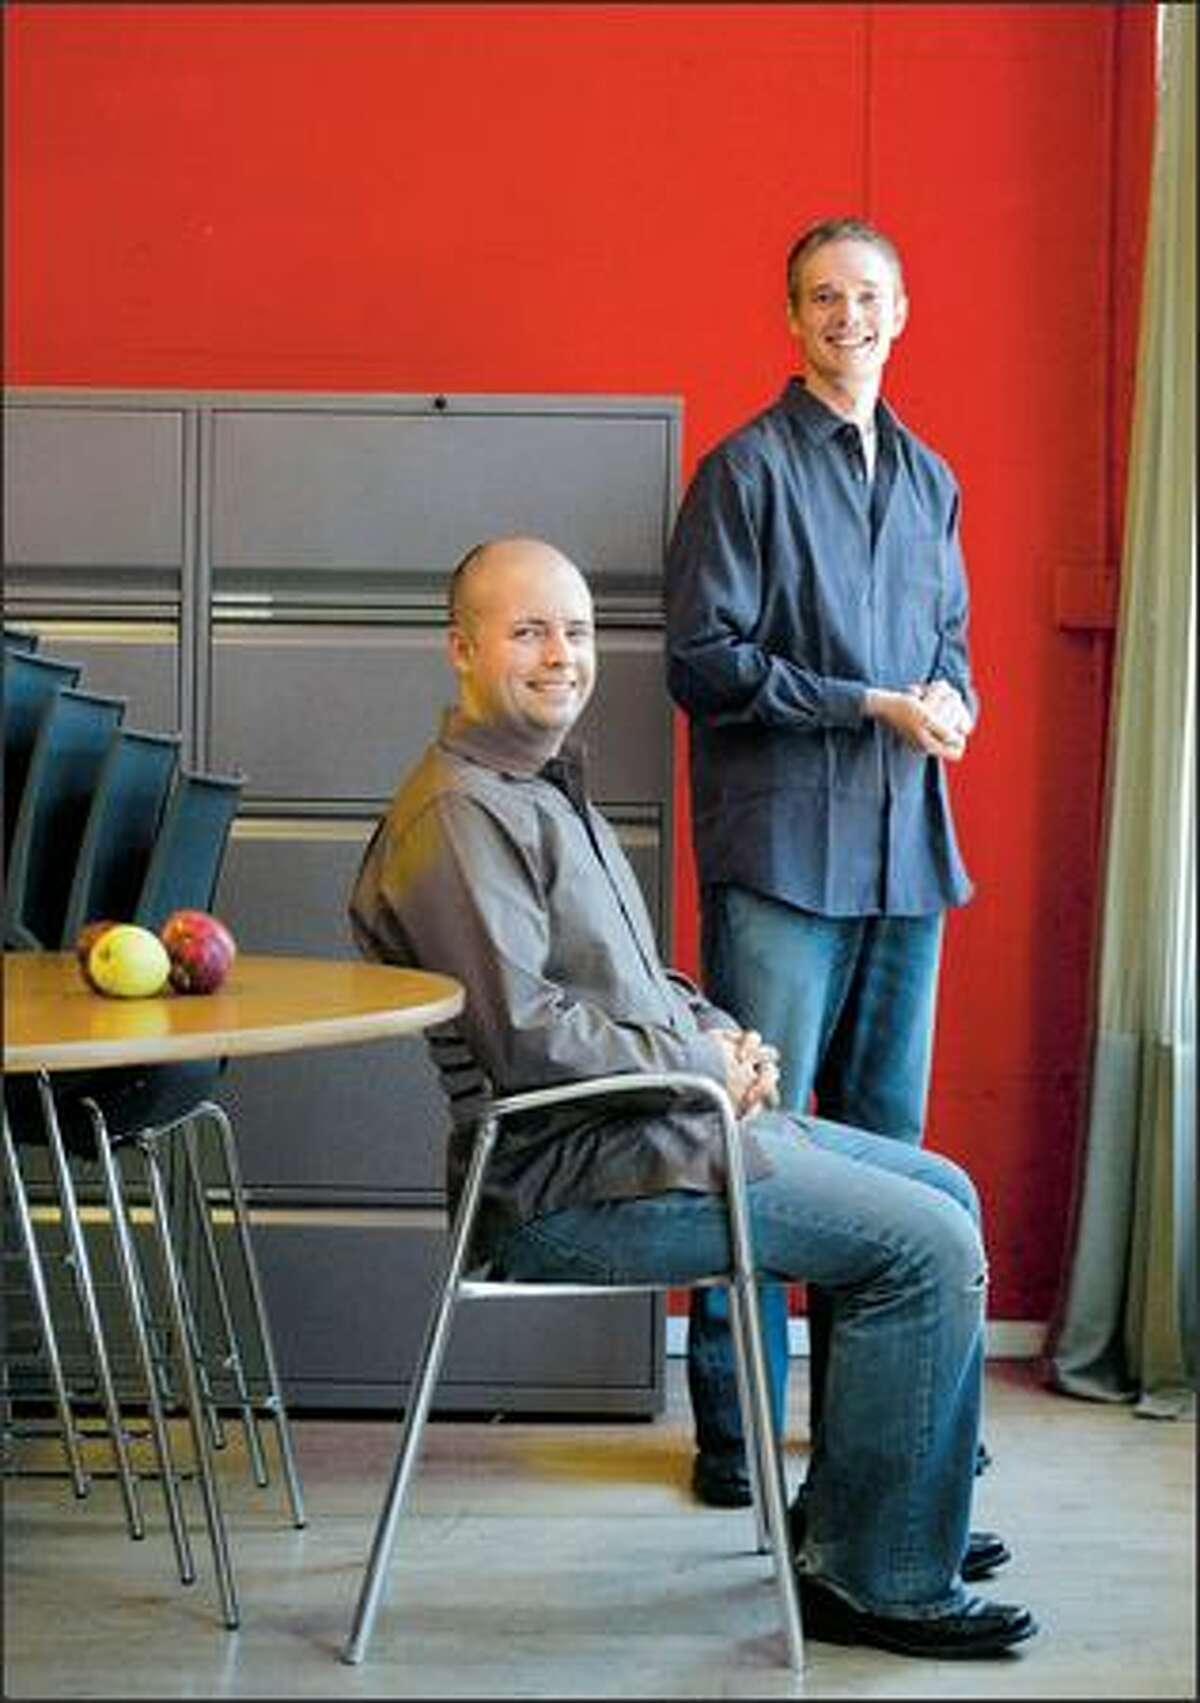 Josh Hug, left, and Kevin Beukelman are launching Shelfari today, a Web site that allows people to list book titles, write reviews, recommend books to friends. Hug is president; Beukelman, chief architect.